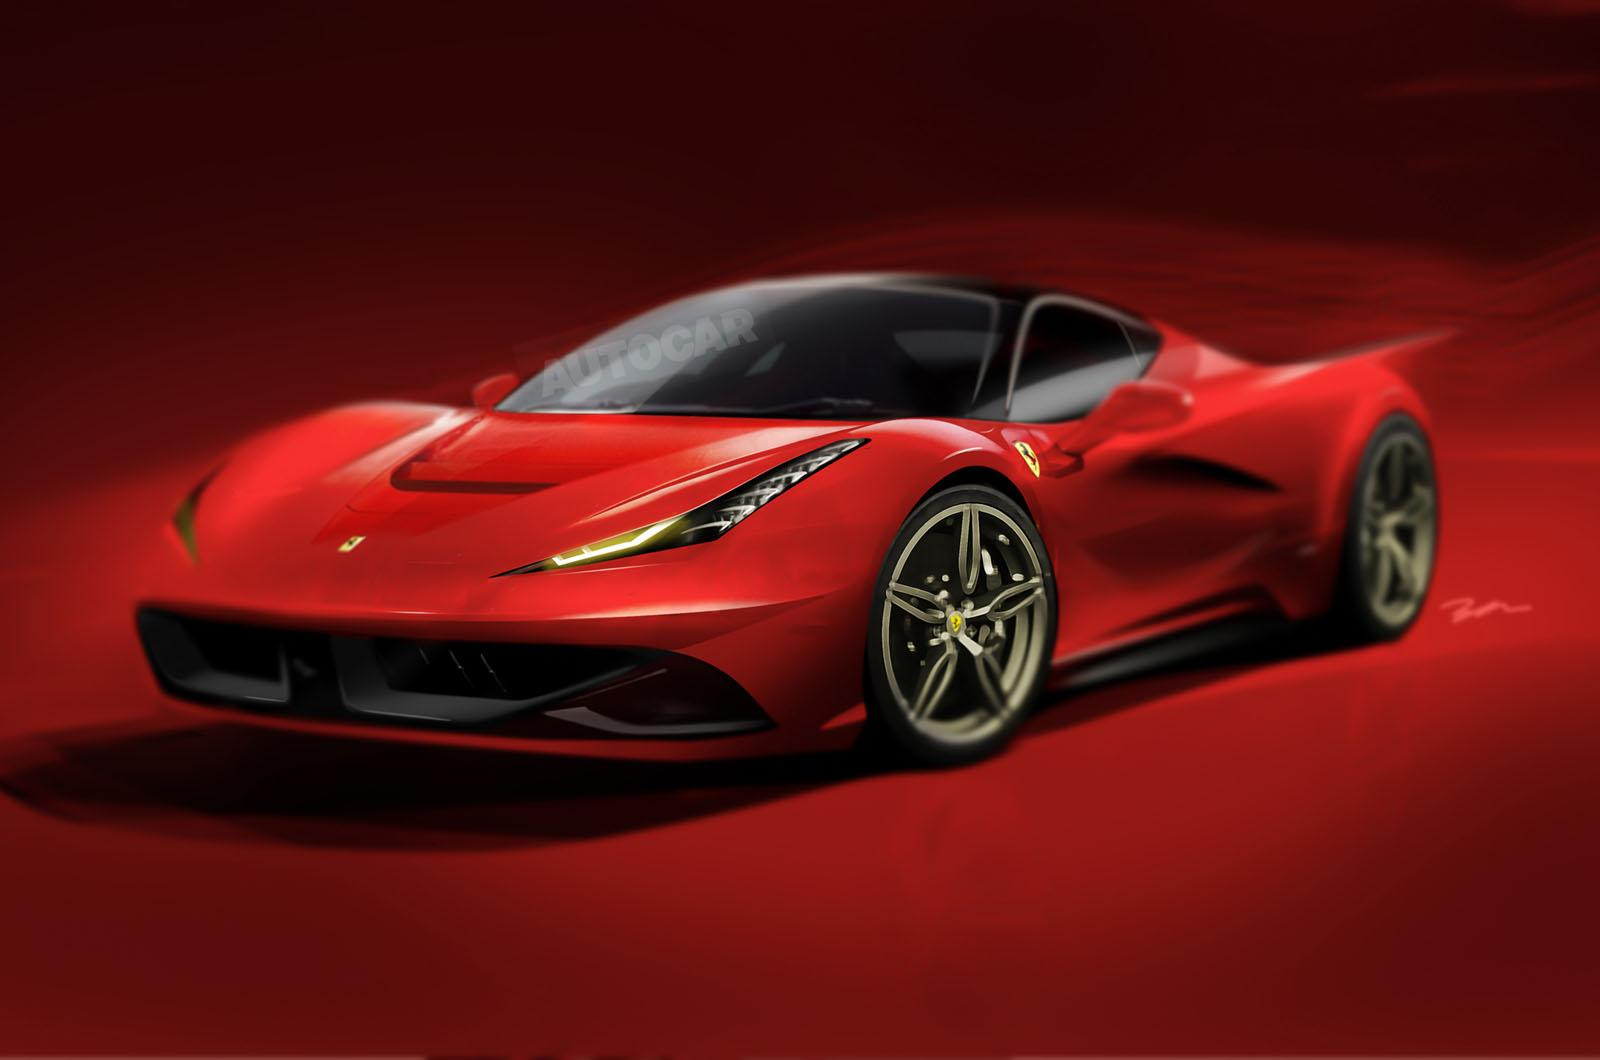 Ferrari 458 Rumors May Feature Twin Turbo V8 With 650 Hp